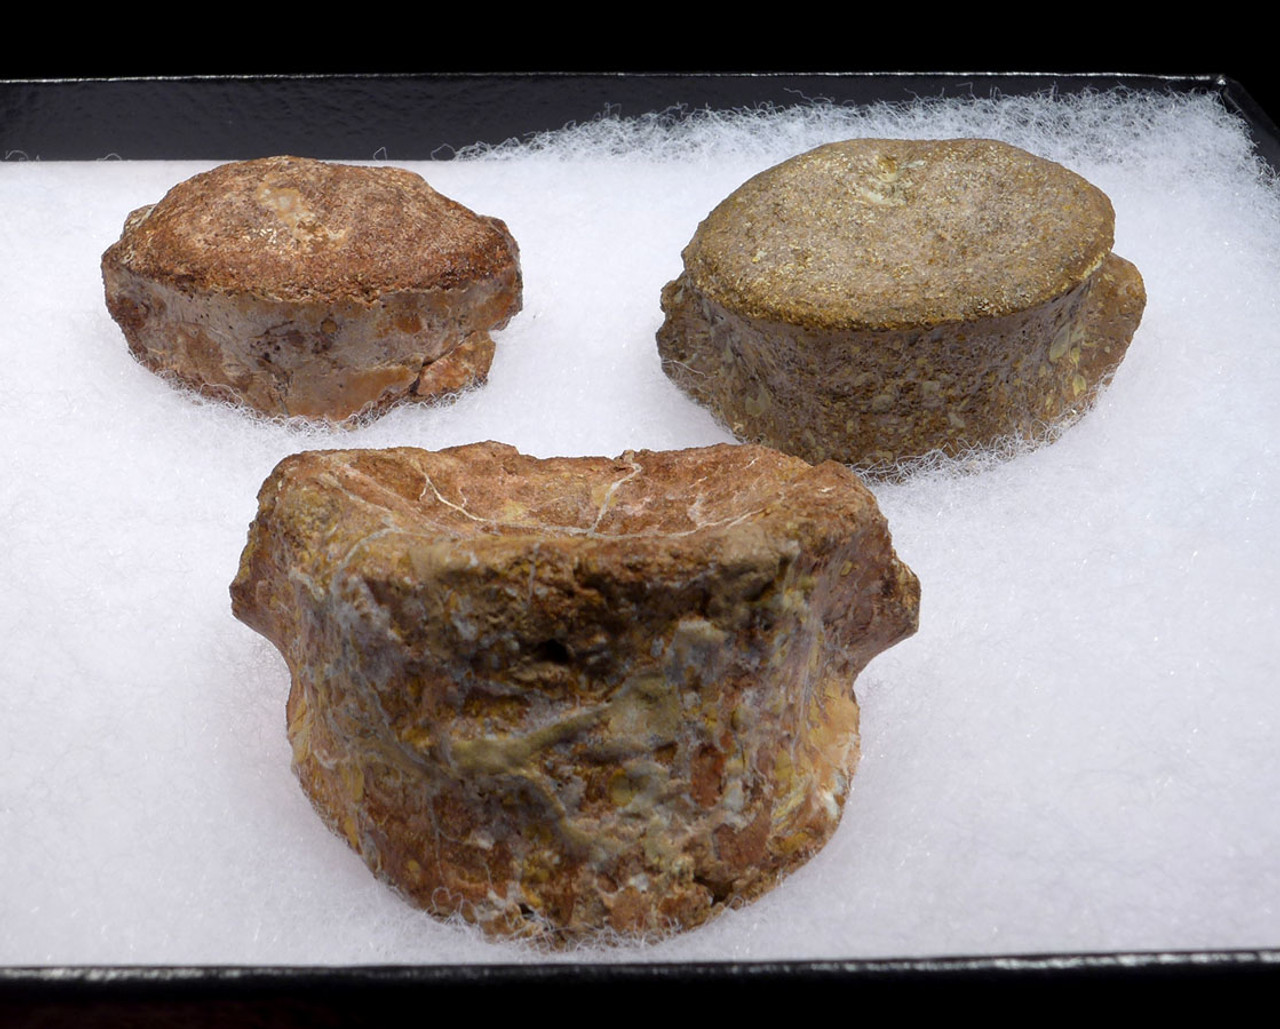 RARE SET OF 3 GIANT METOPOSAURUS AMPHIBIAN FOSSIL VERTEBRAE FROM THE TRIASSIC *MVX99